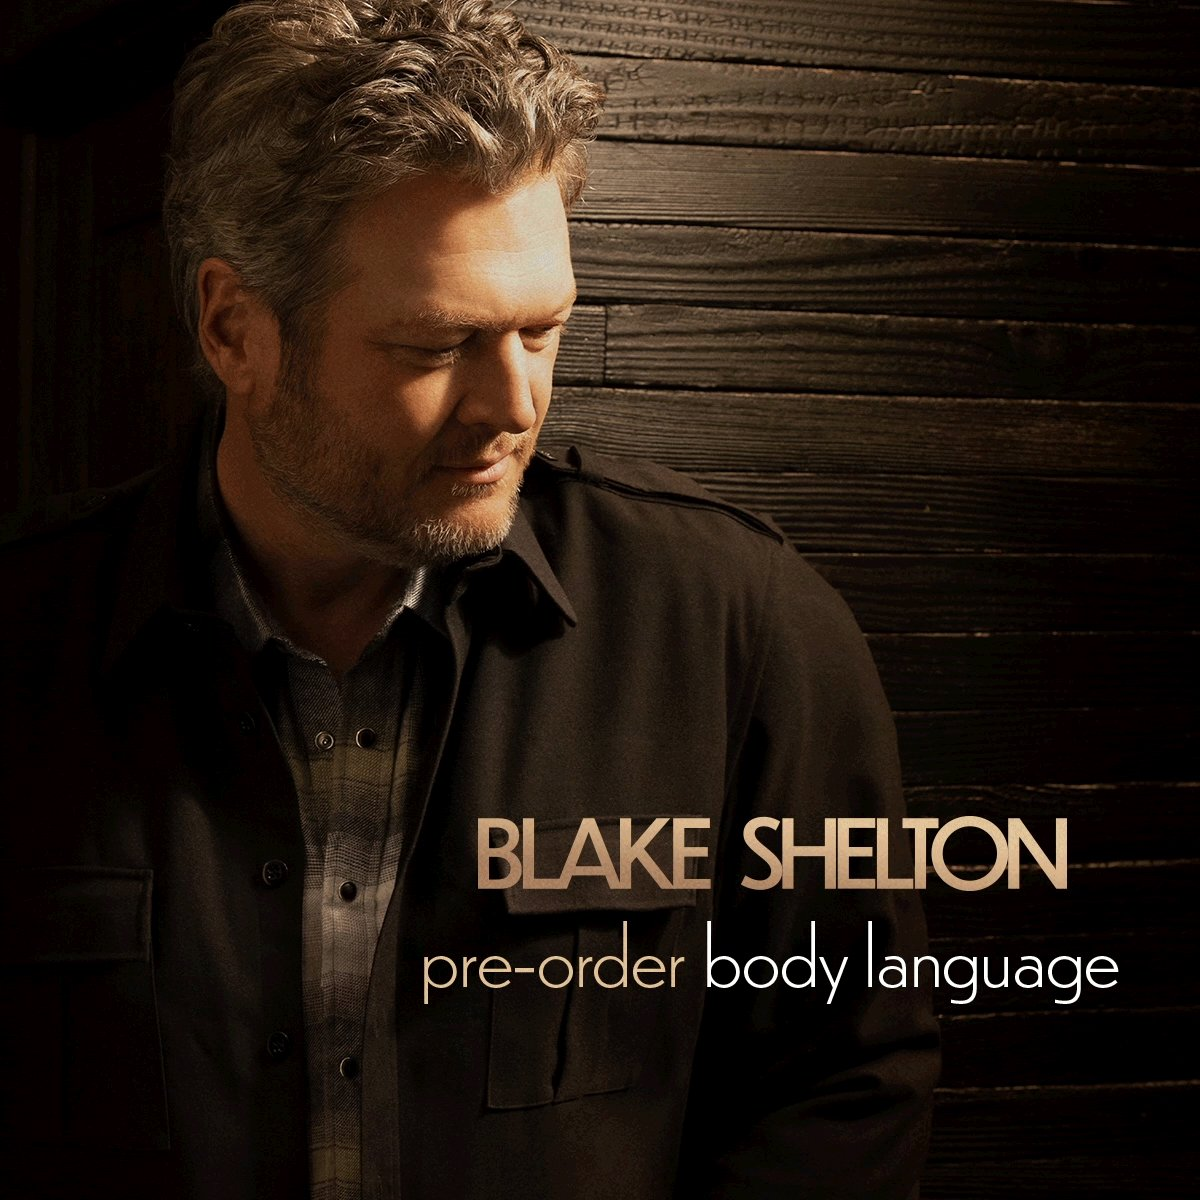 We've heard it and you don't want to miss out on this one! Pre-order Blake's upcoming album #BodyLanguage today! -Team BS